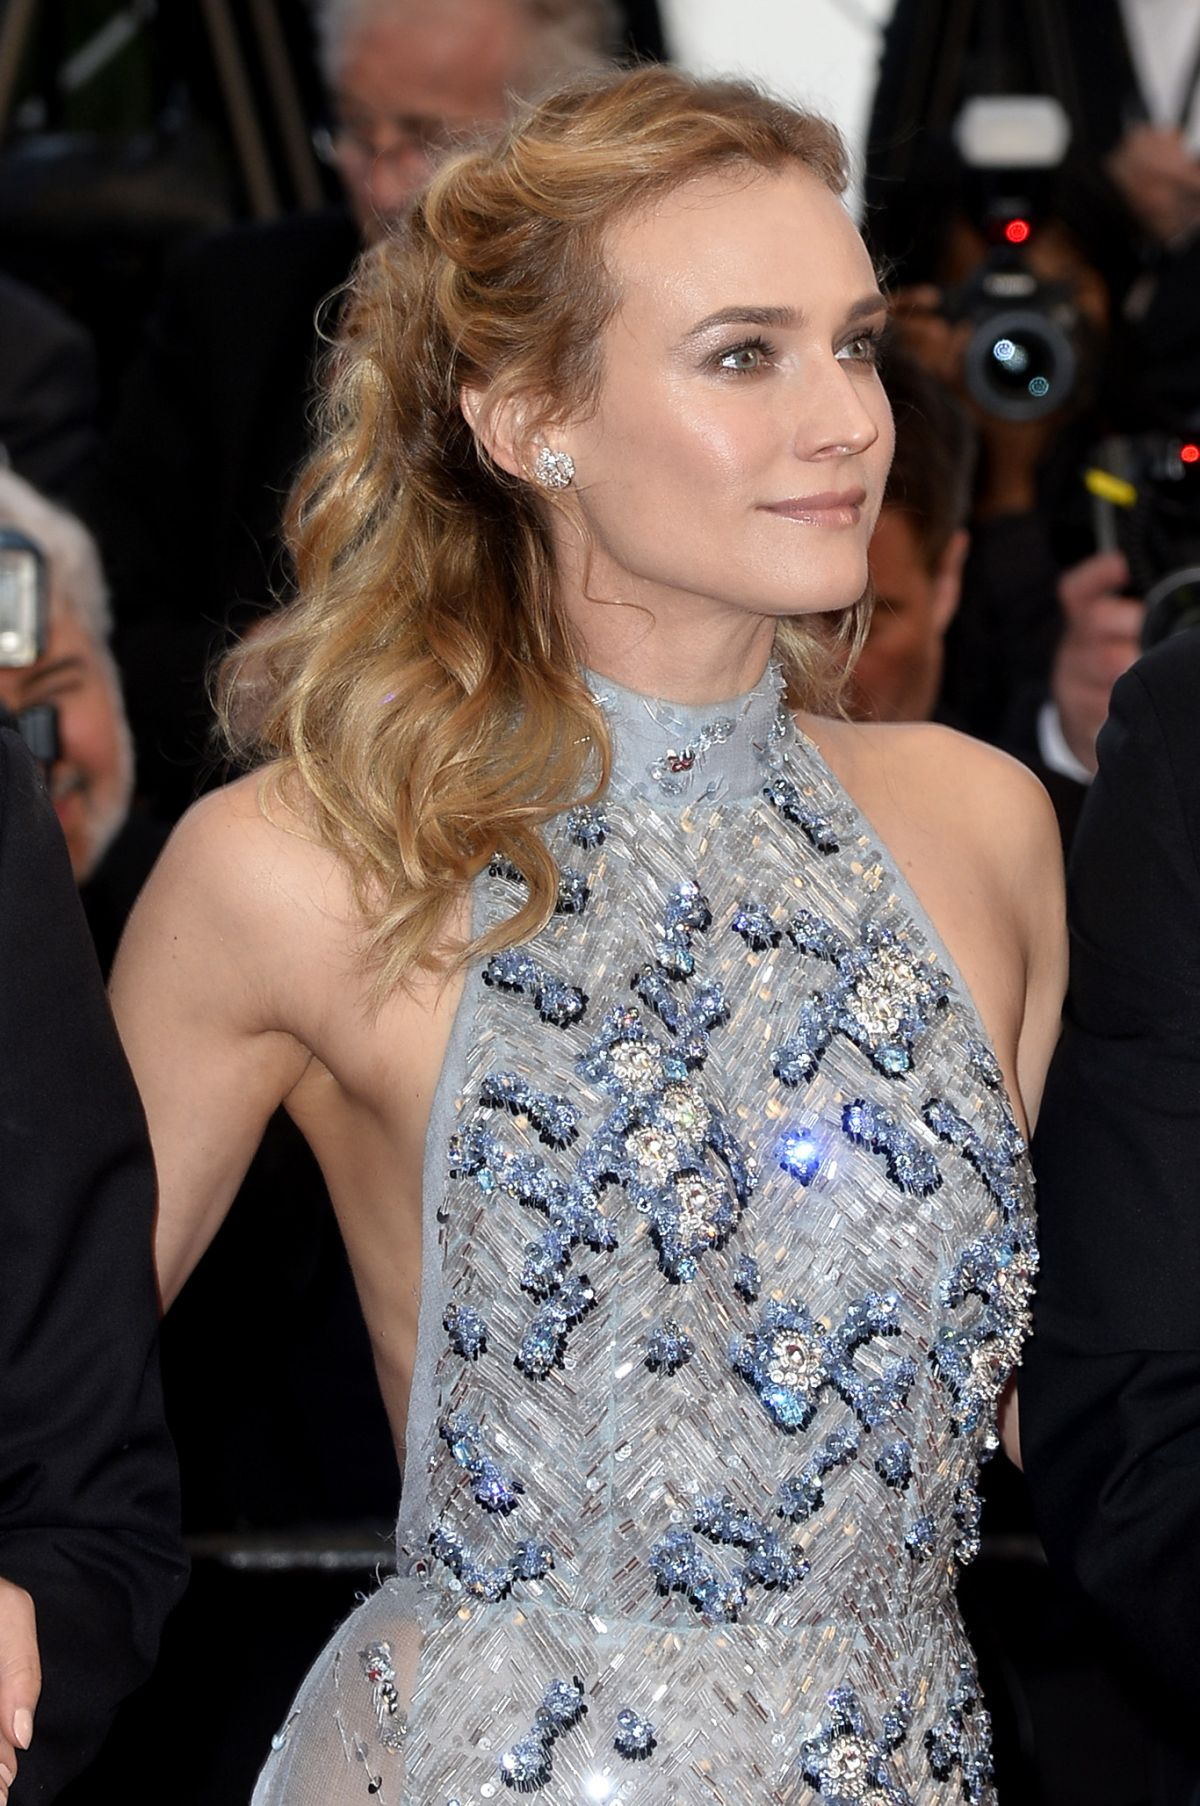 Diane Kruger At The Sea Of Trees Premiere At Cannes Film